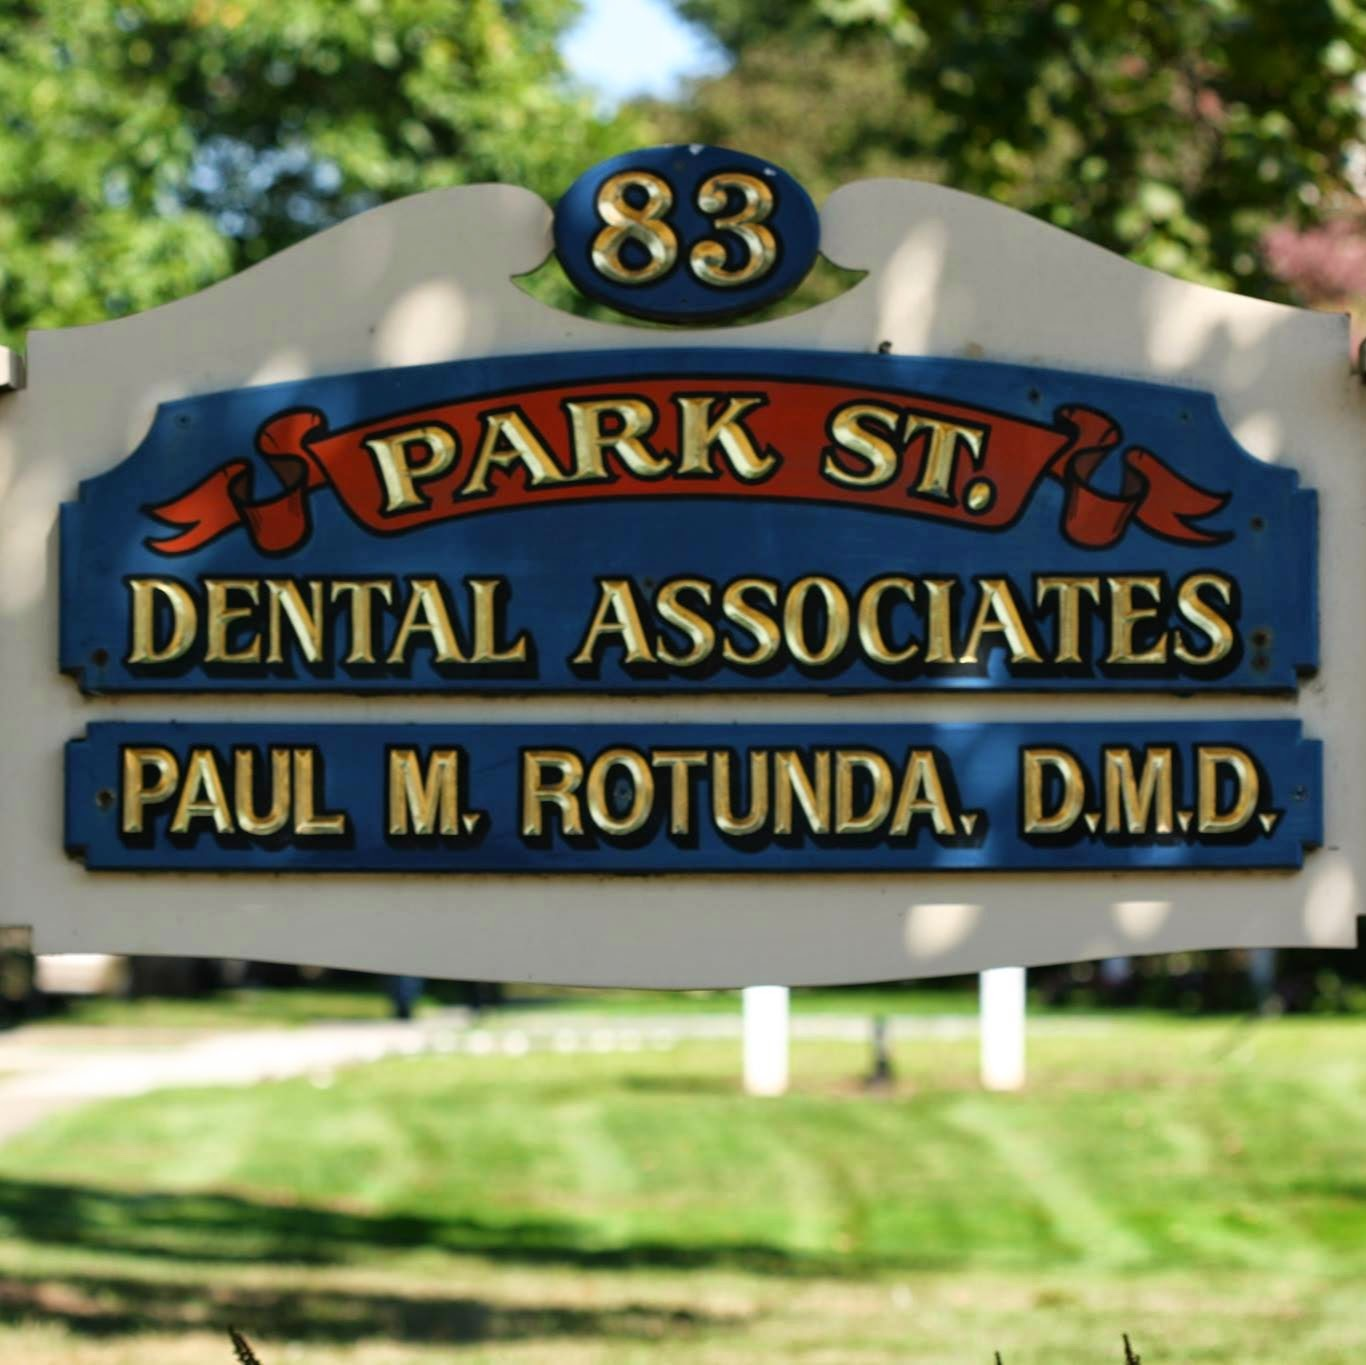 Paul M. Rotunda, DMD in Montclair